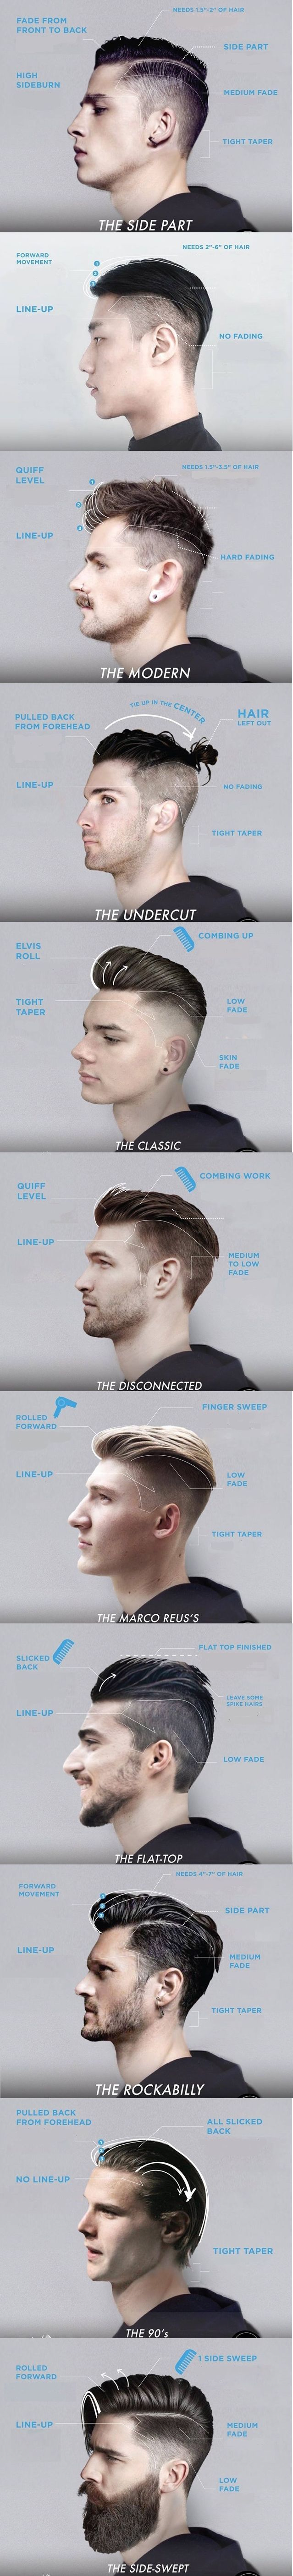 26 dashing men's hairstyles | cortes caballeros | hair cuts